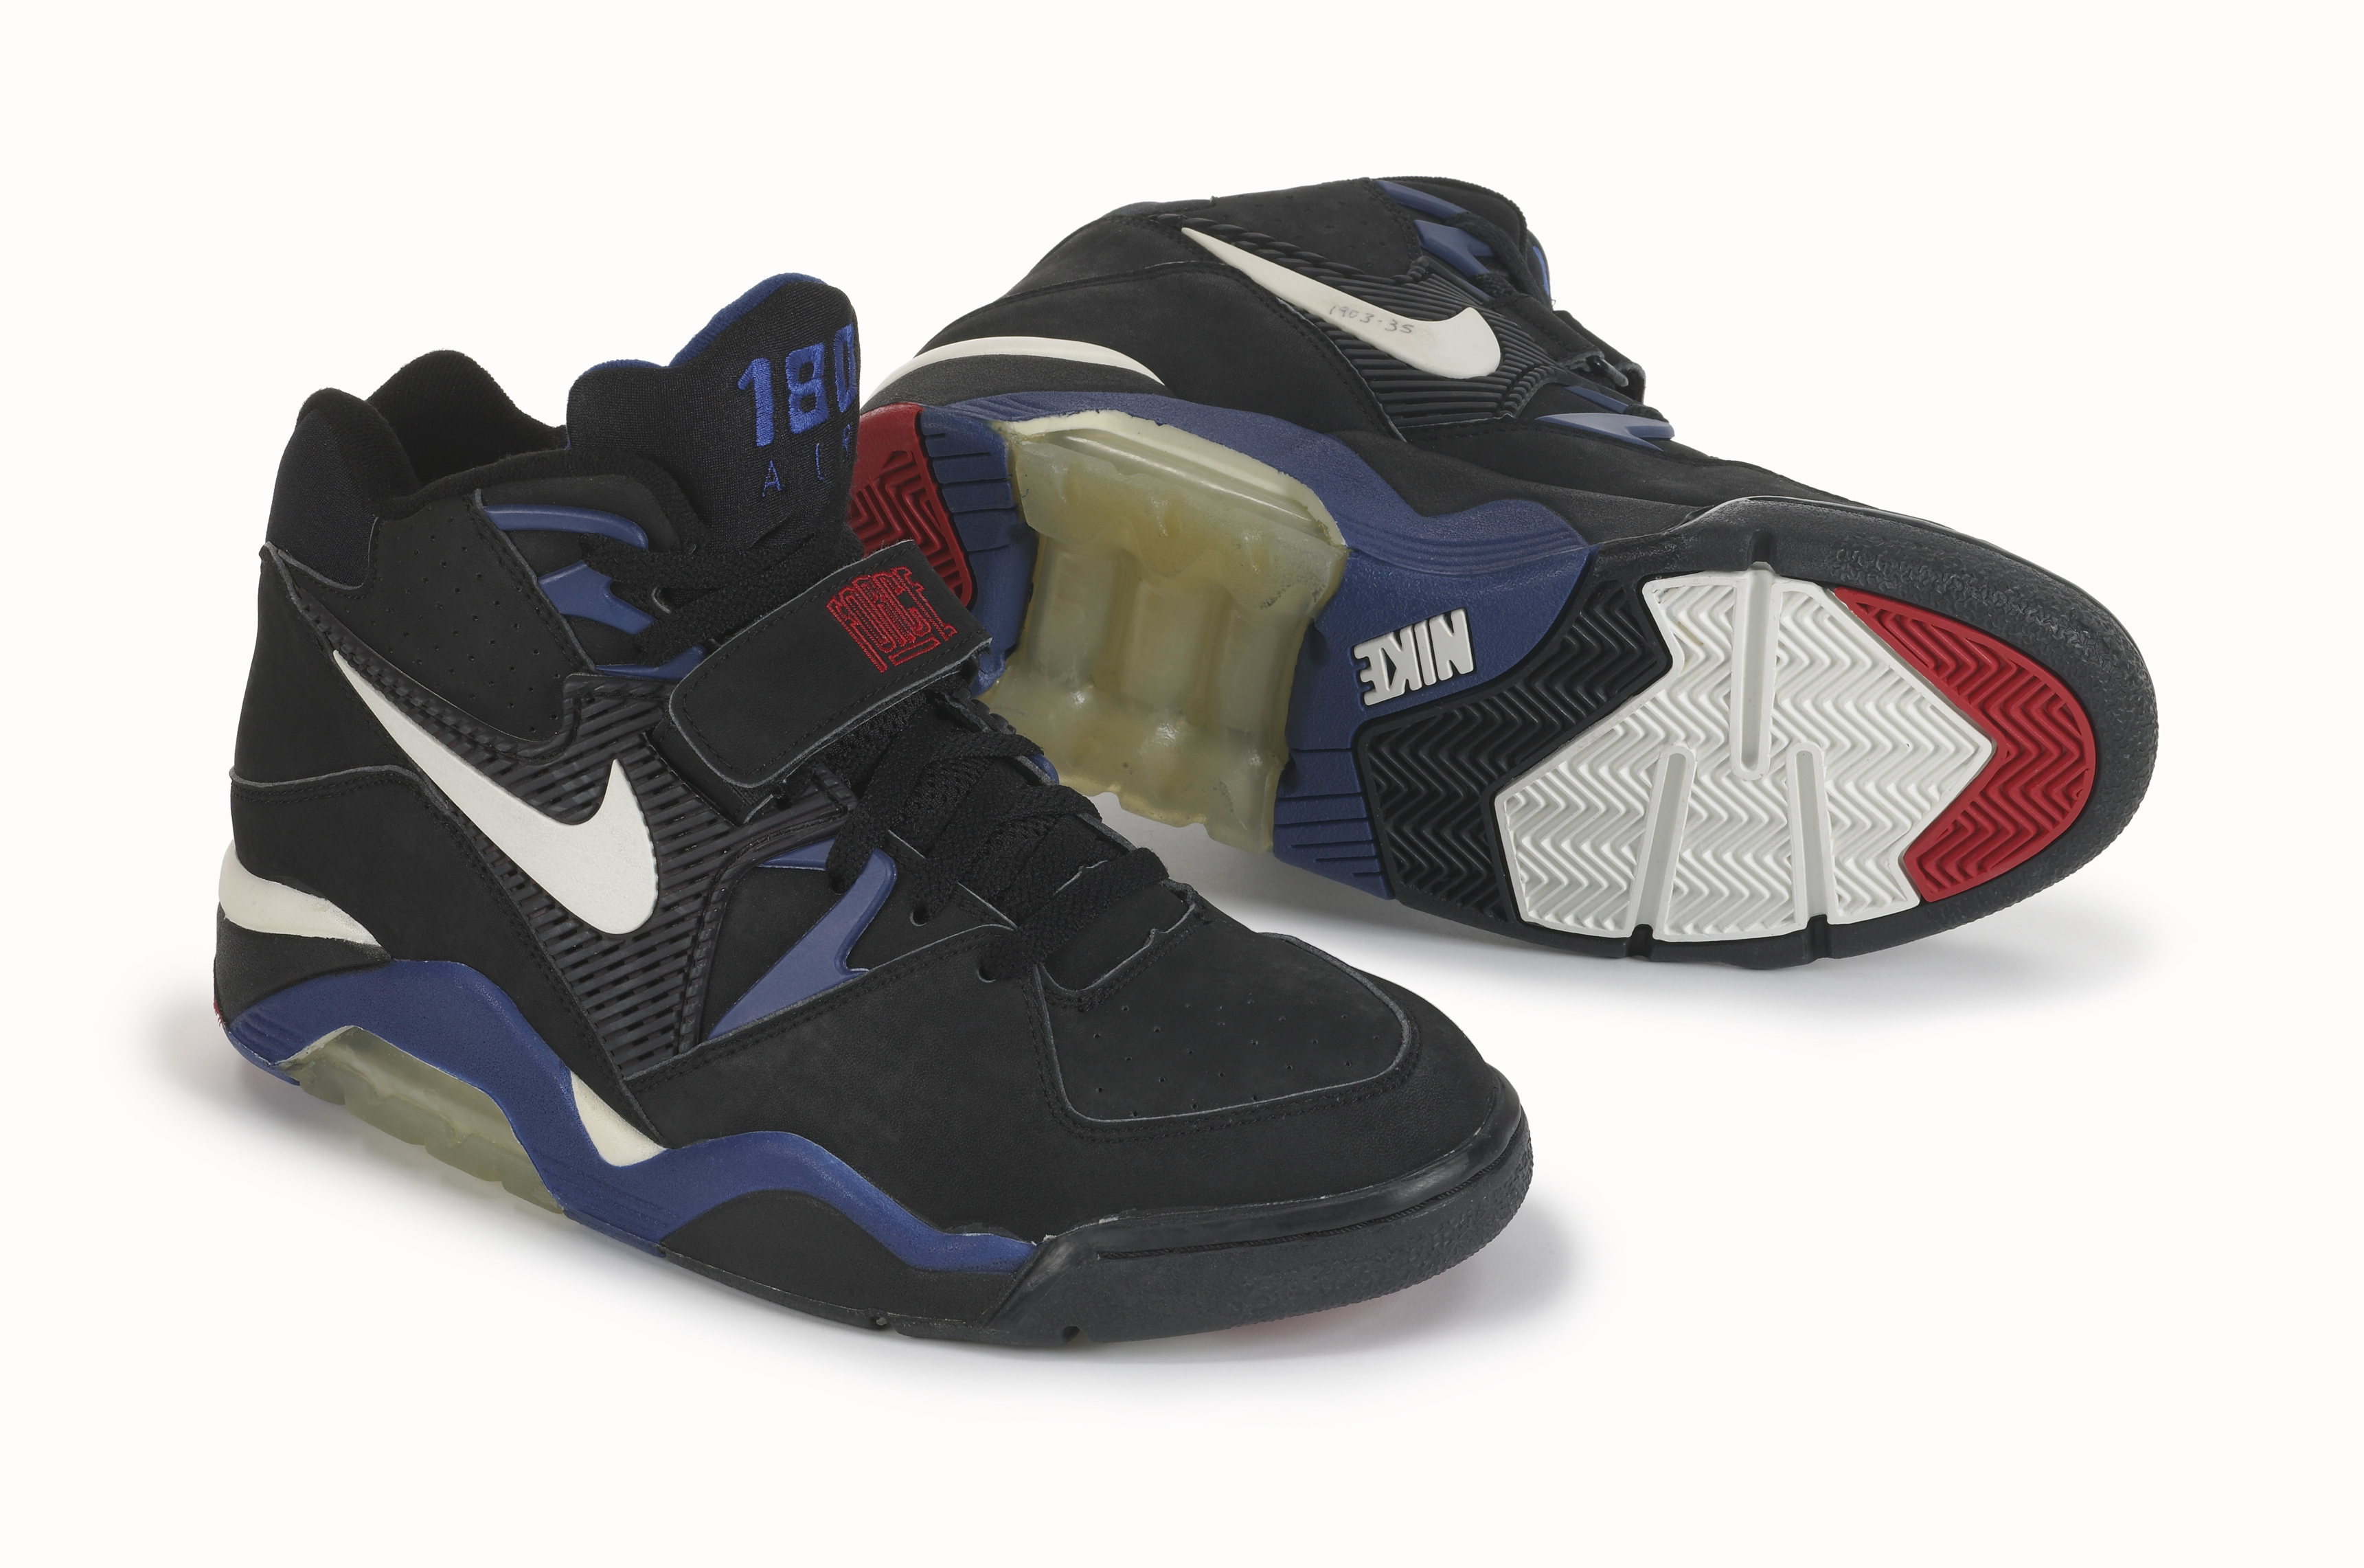 online store 88cd0 a1e0c ... sweden nike air force 180 black air max 180 basketball shoes 8103c 958ad